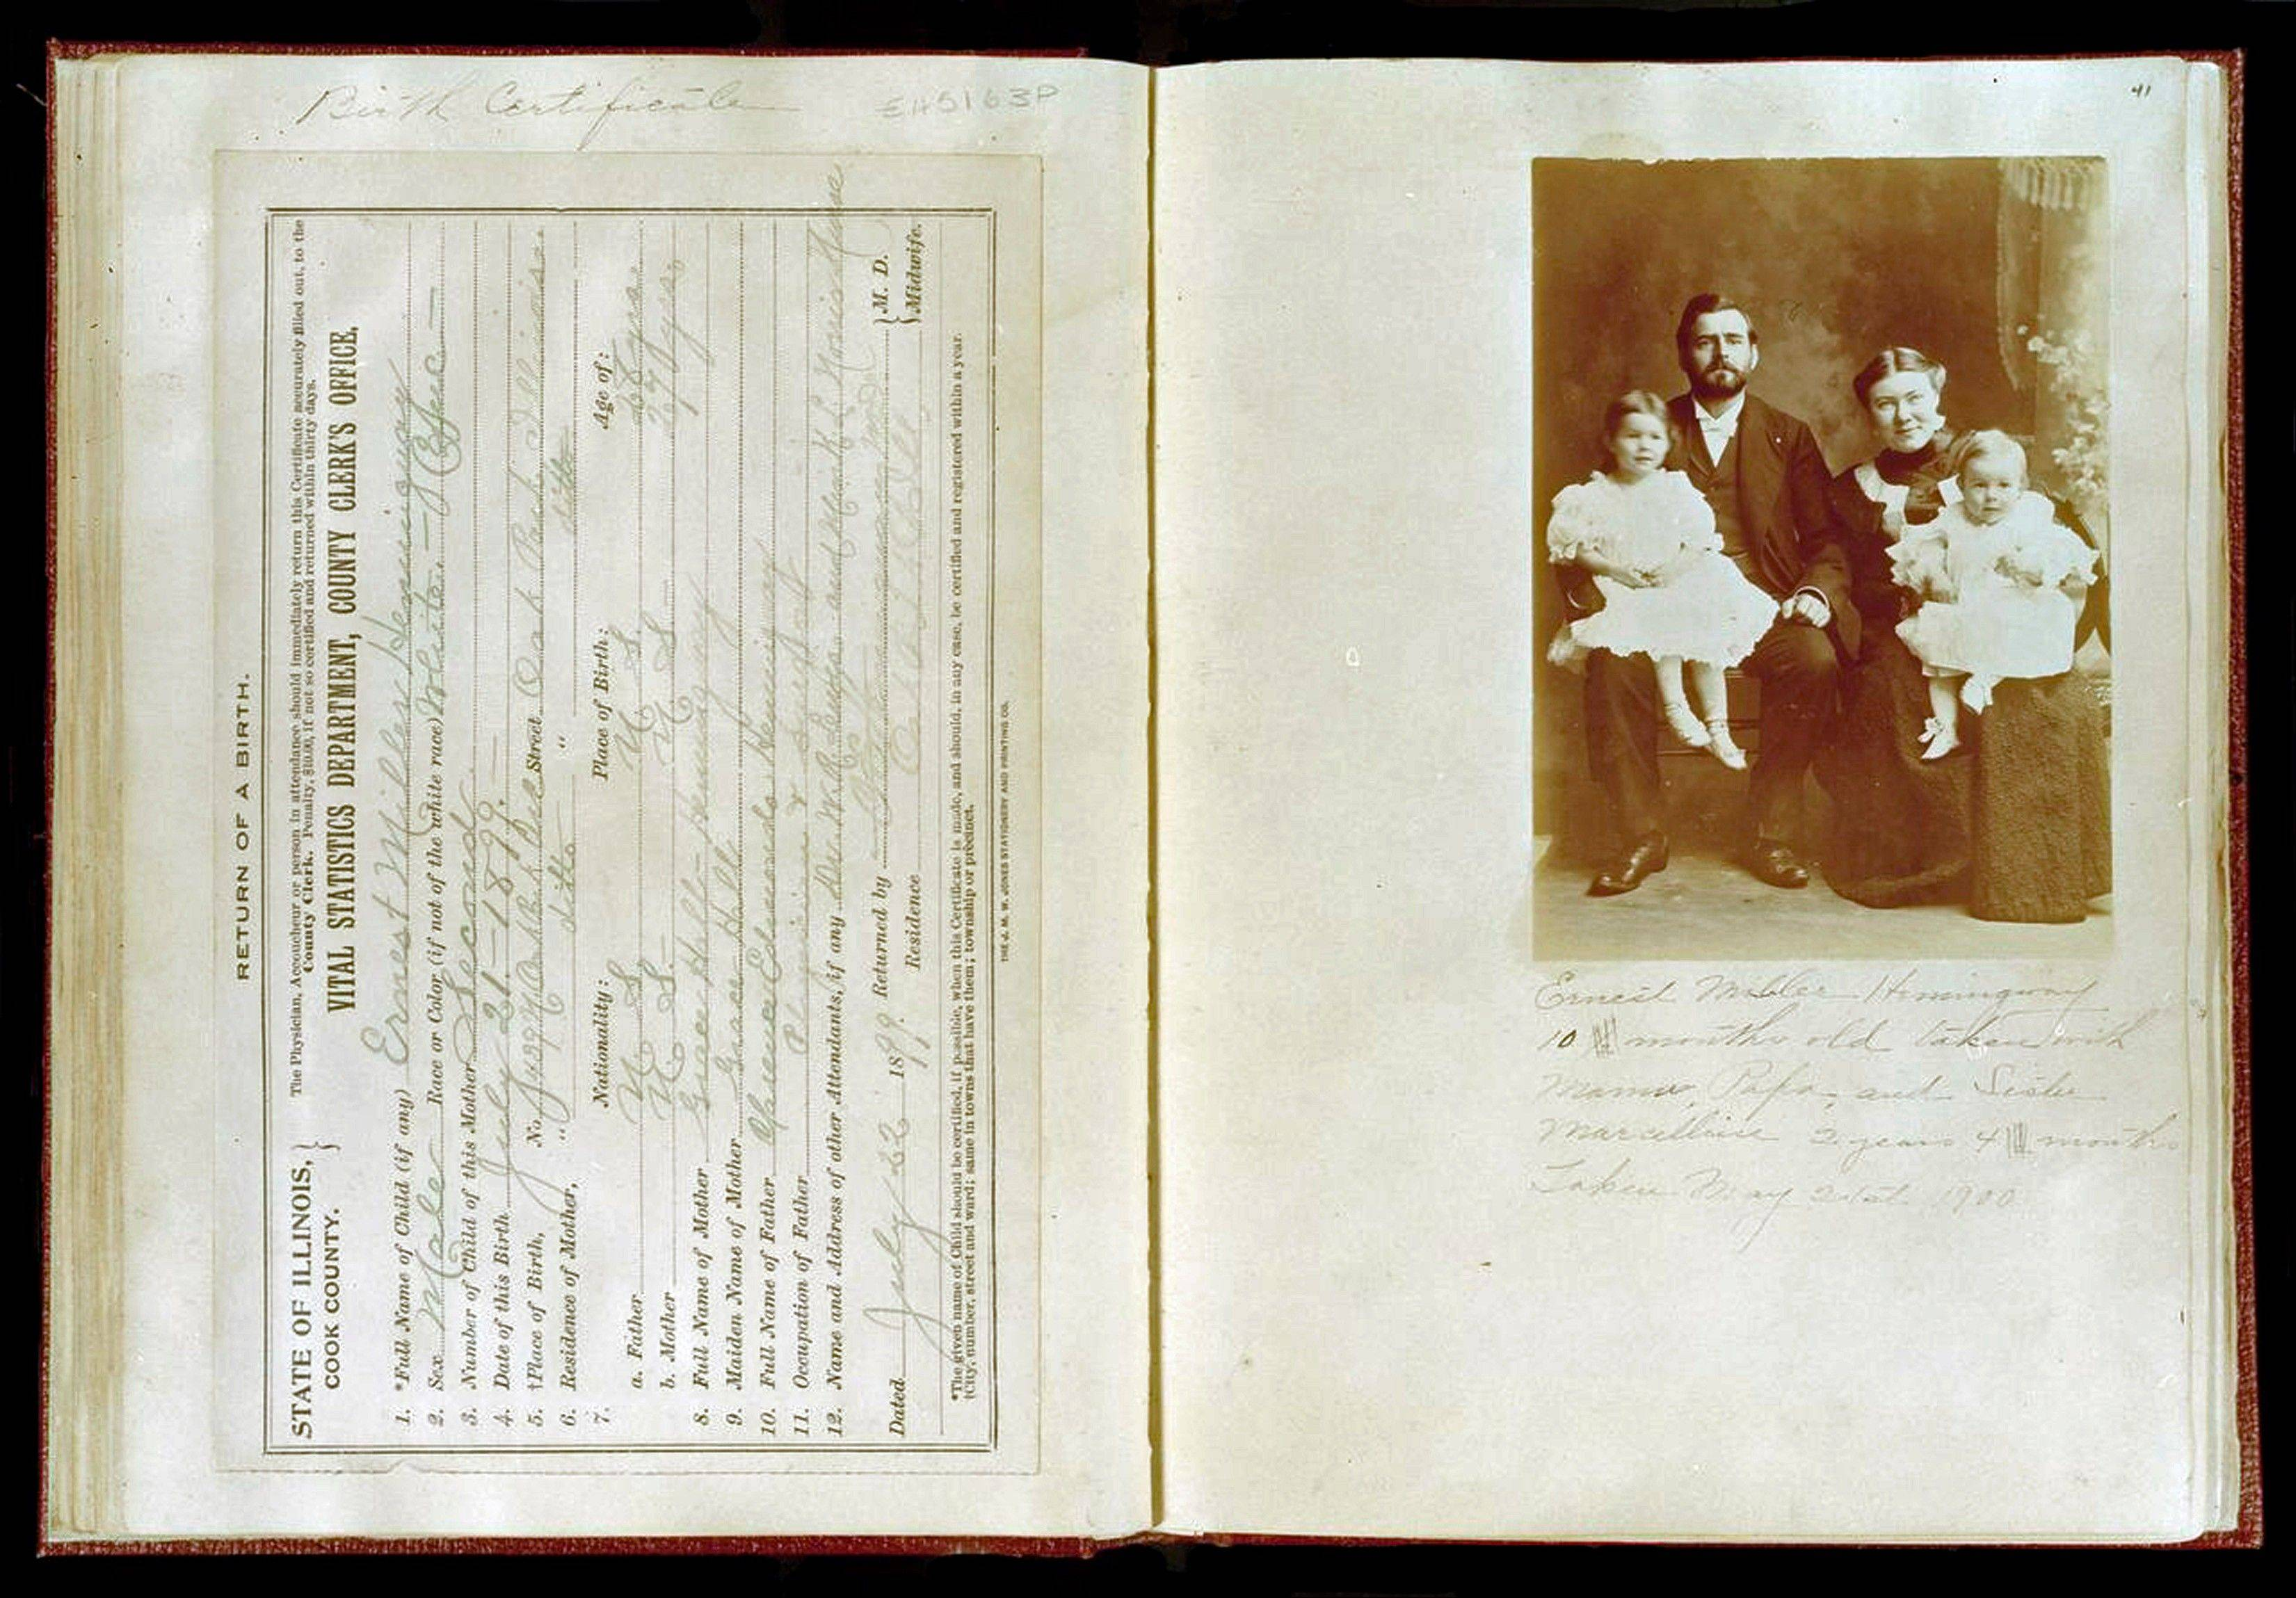 The birth certificate and family photograph of Ernest Hemingway from a scrapbook created by his mother, Grace Hall Hemingway, at the John F. Kennedy Presidential Library in Boston.